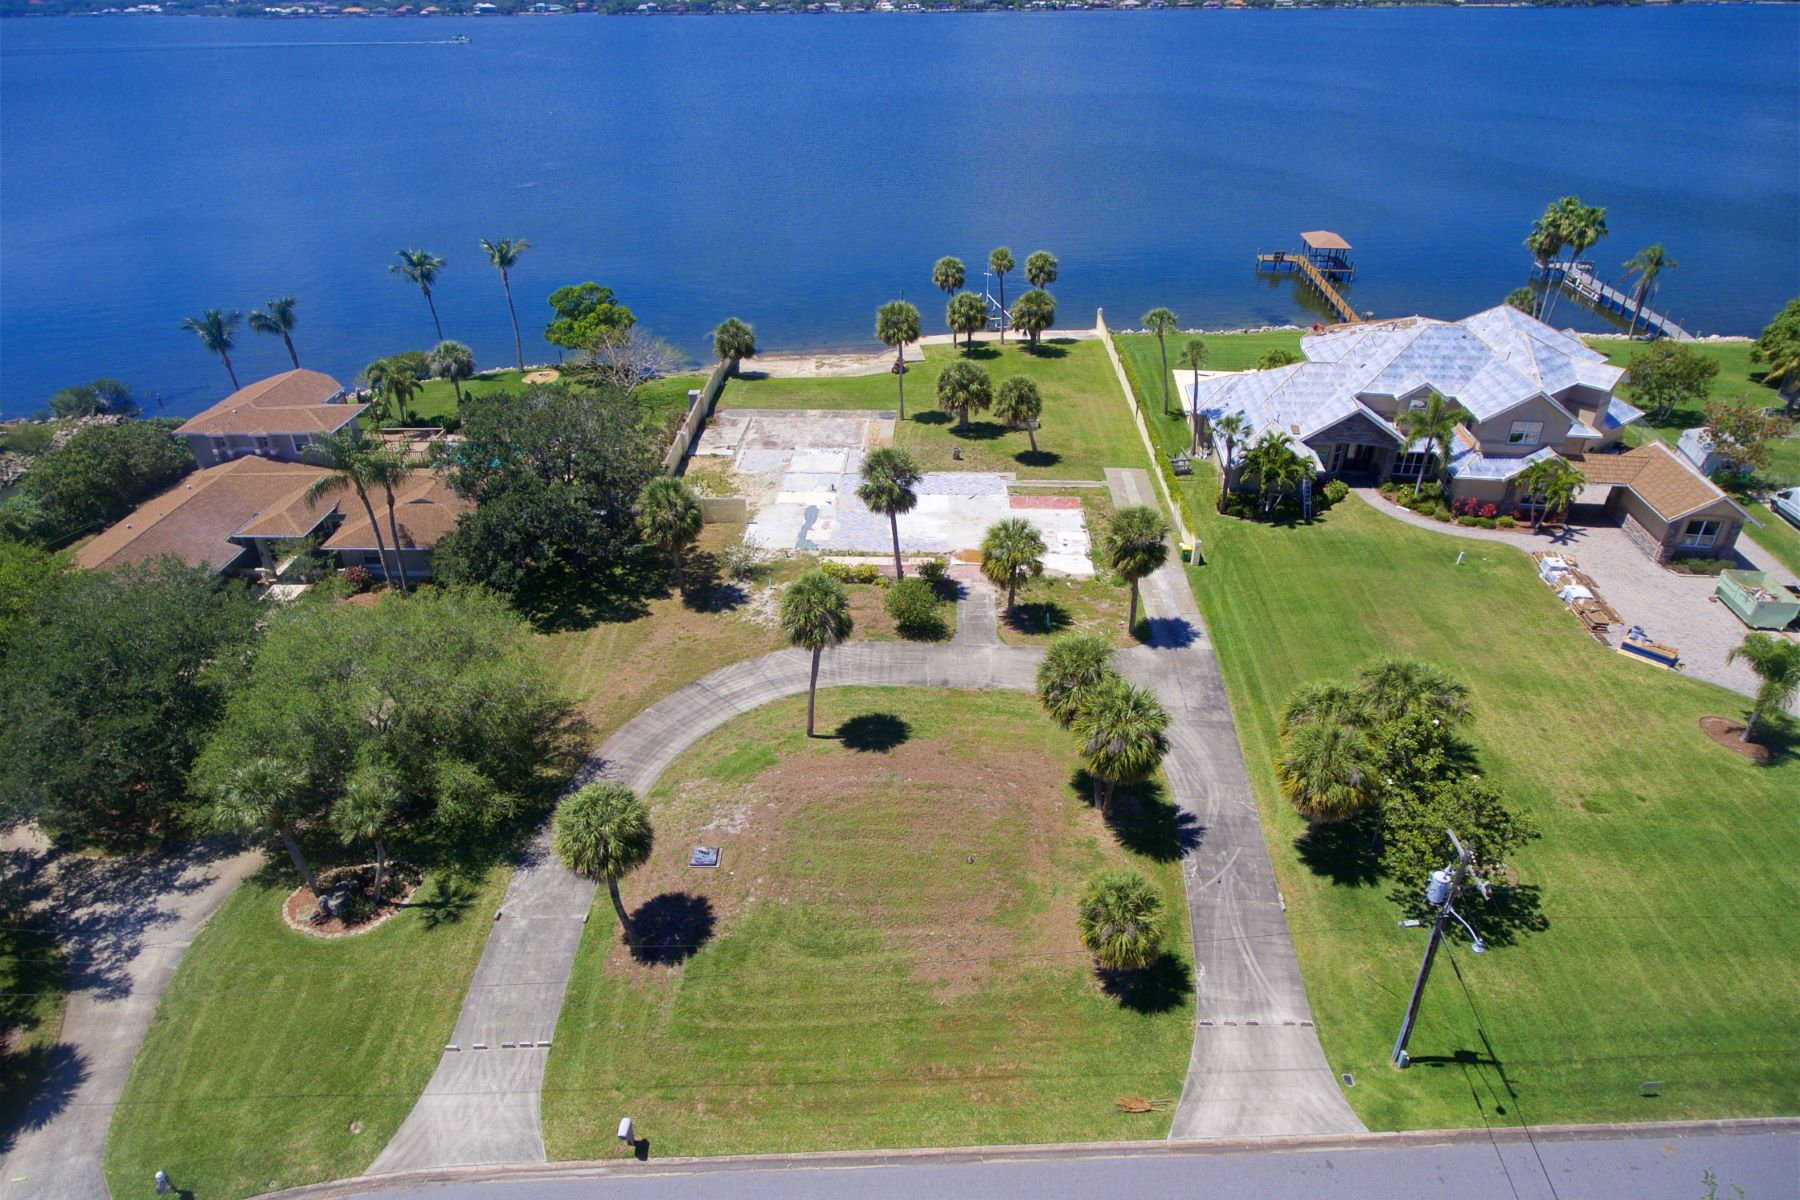 Land for Sale at Premium Waterfront Homesite in Convenient and Manicured Tequesta Harbor 196 Tequesta Harbor Drive Merritt Island, Florida 32952 United States